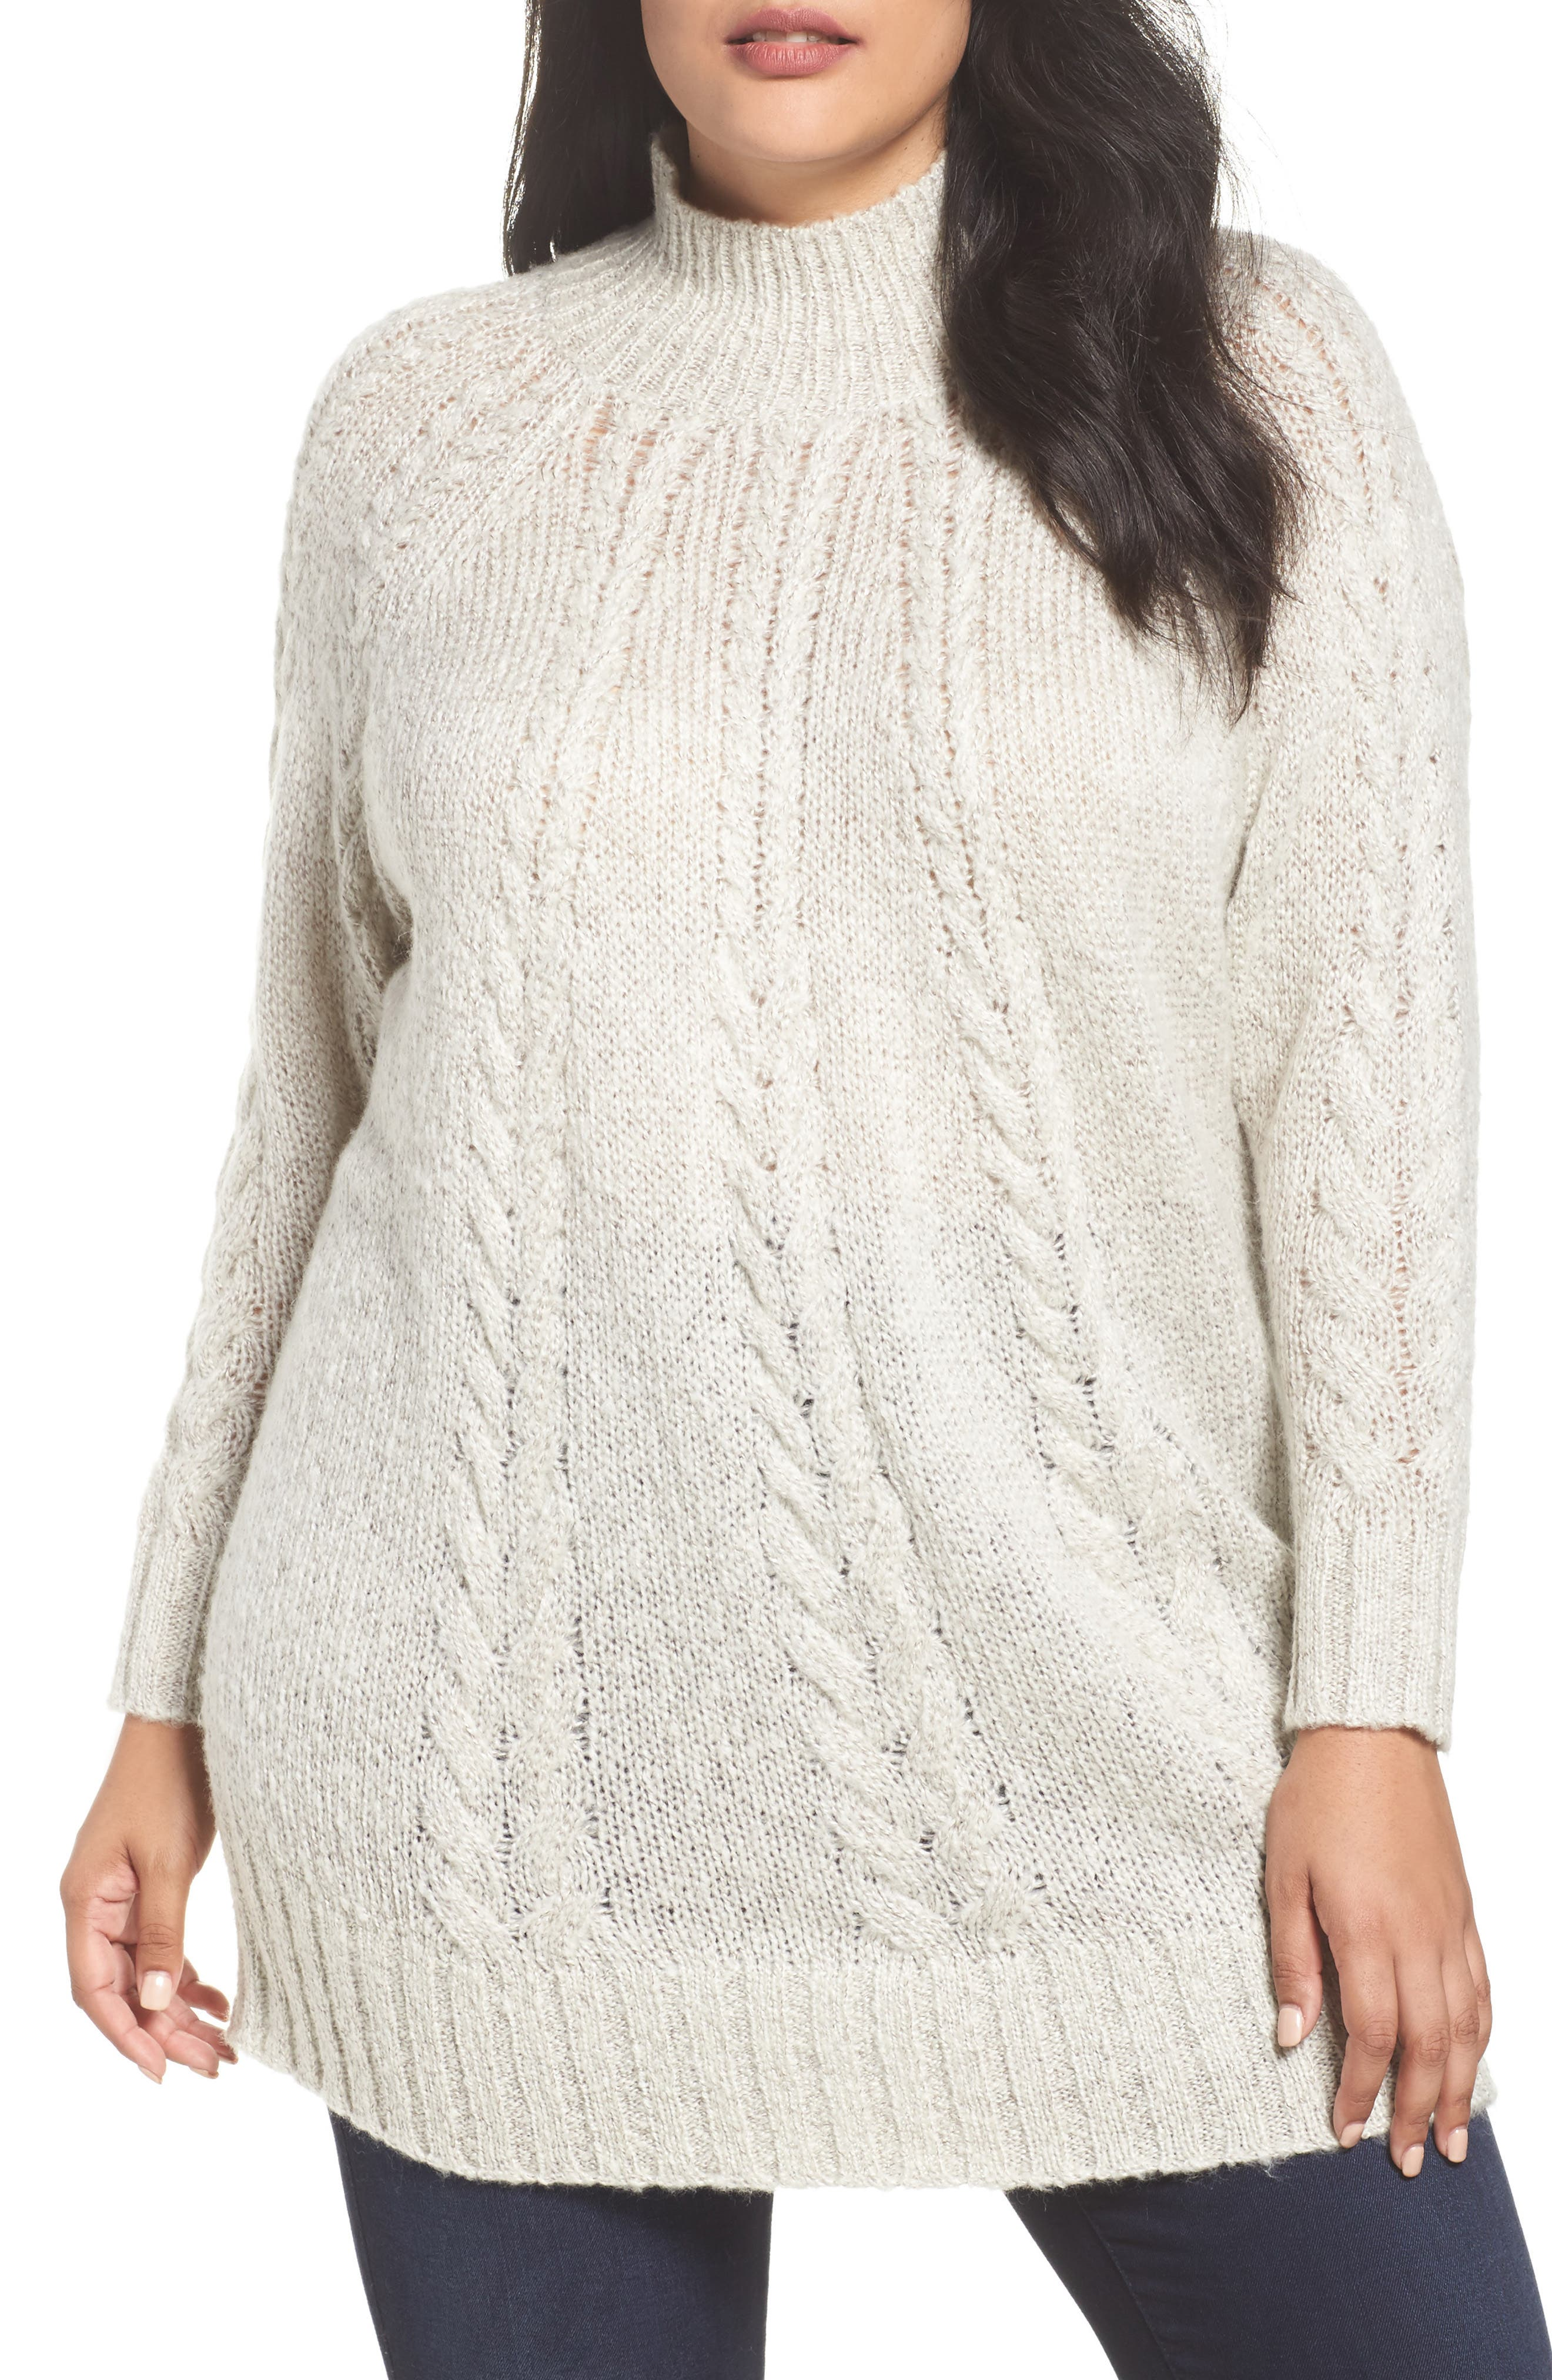 Alternate Image 1 Selected - Caslon® Cable Knit Tunic Sweater (Plus Size)